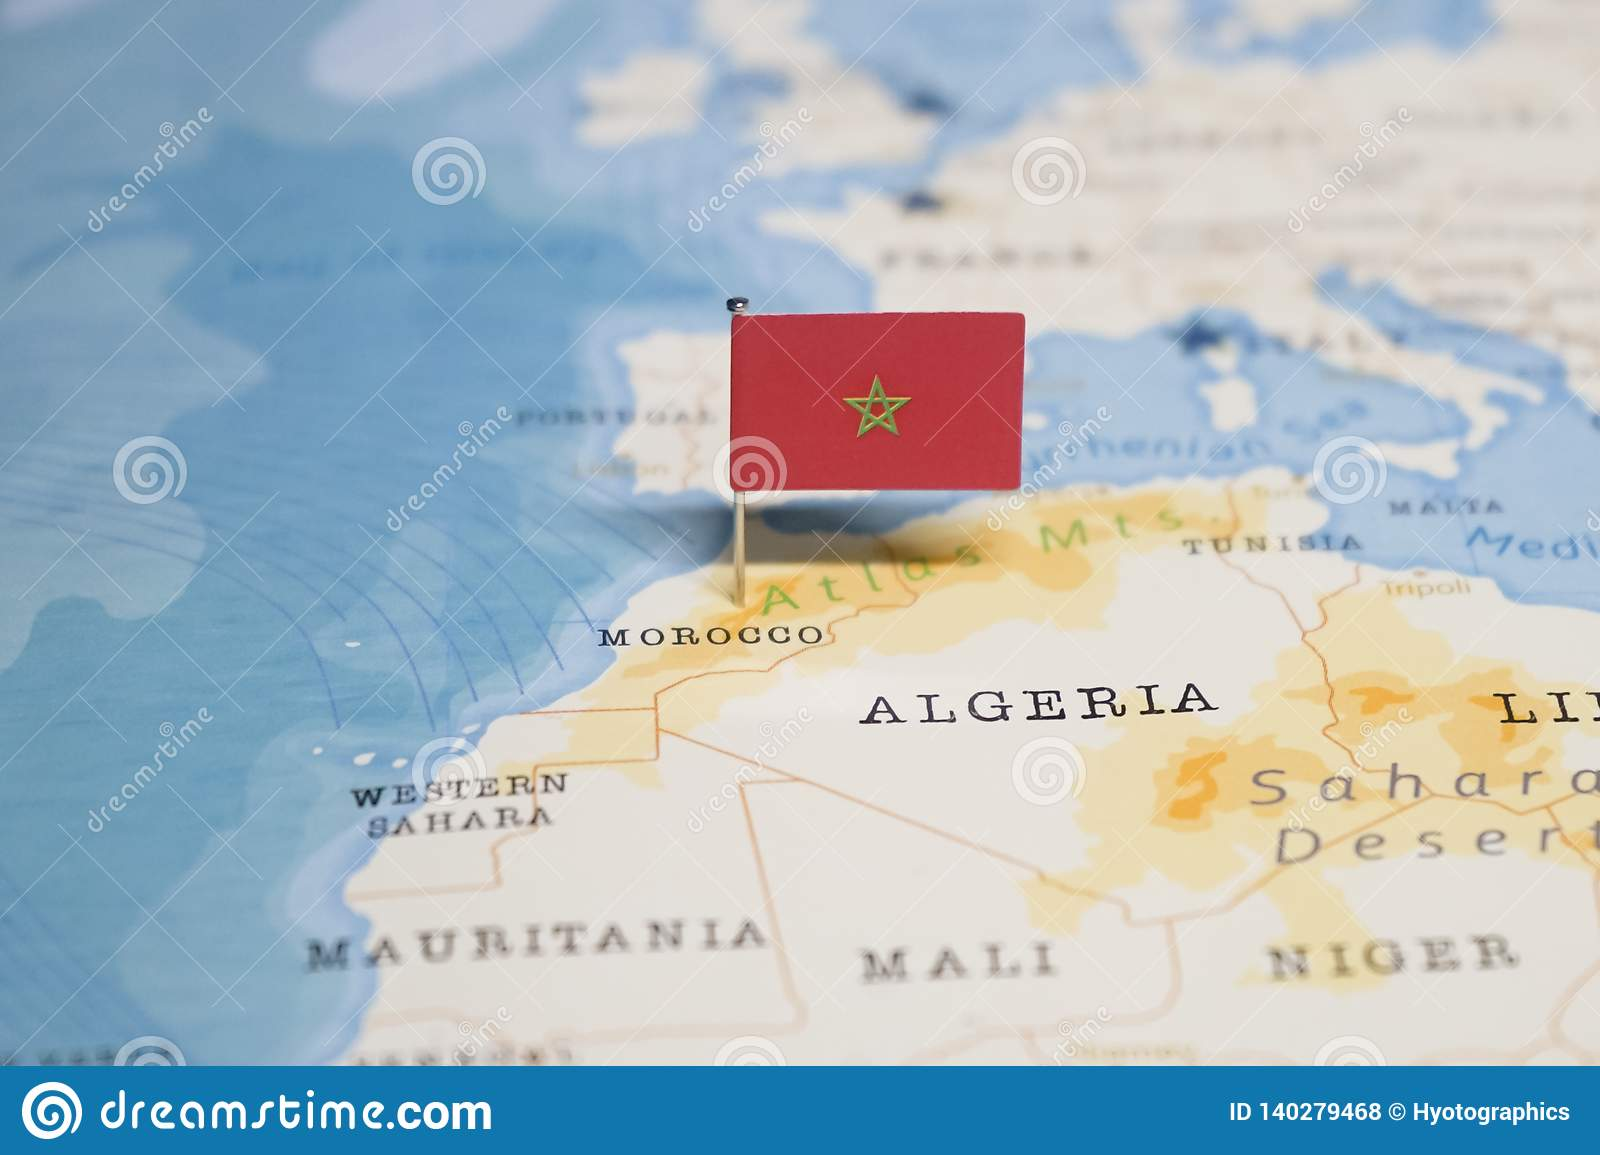 The Flag of morocco in the world map